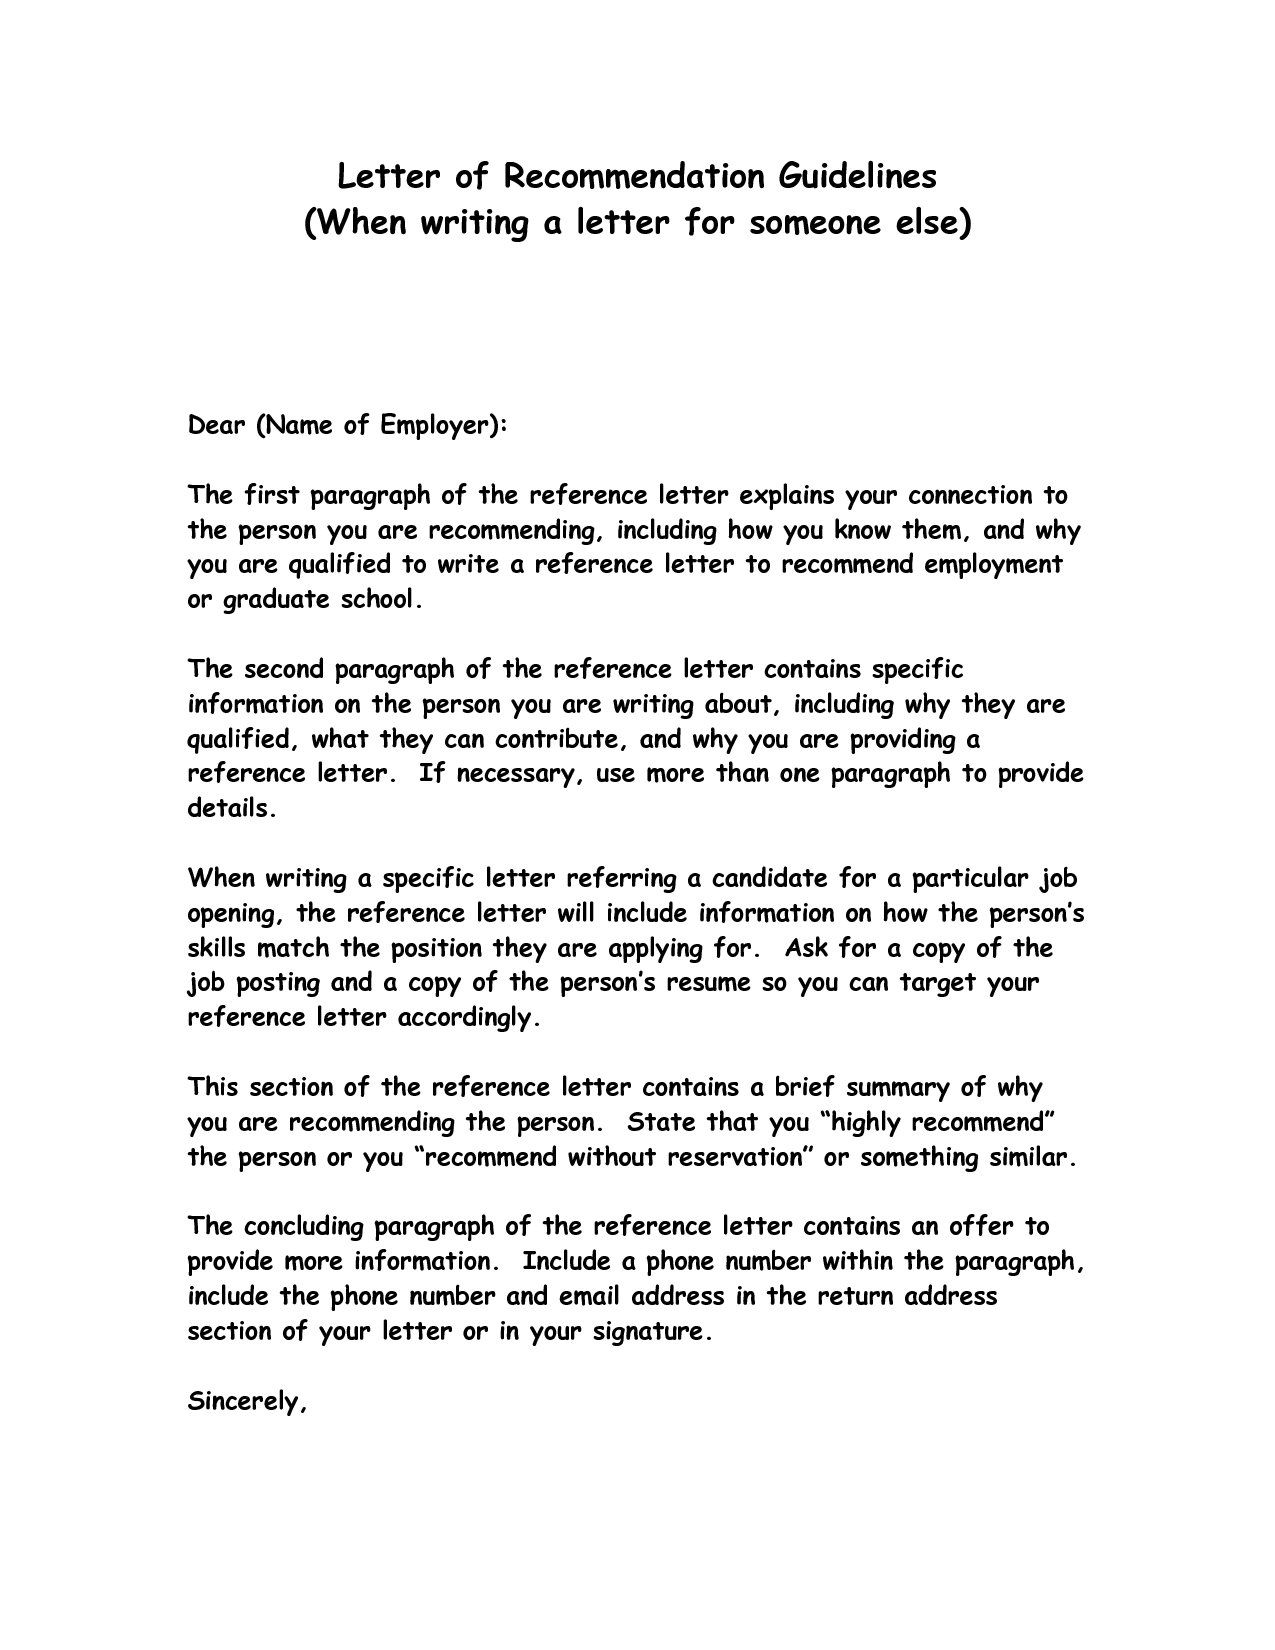 how to write a testimonial letter for a dentist